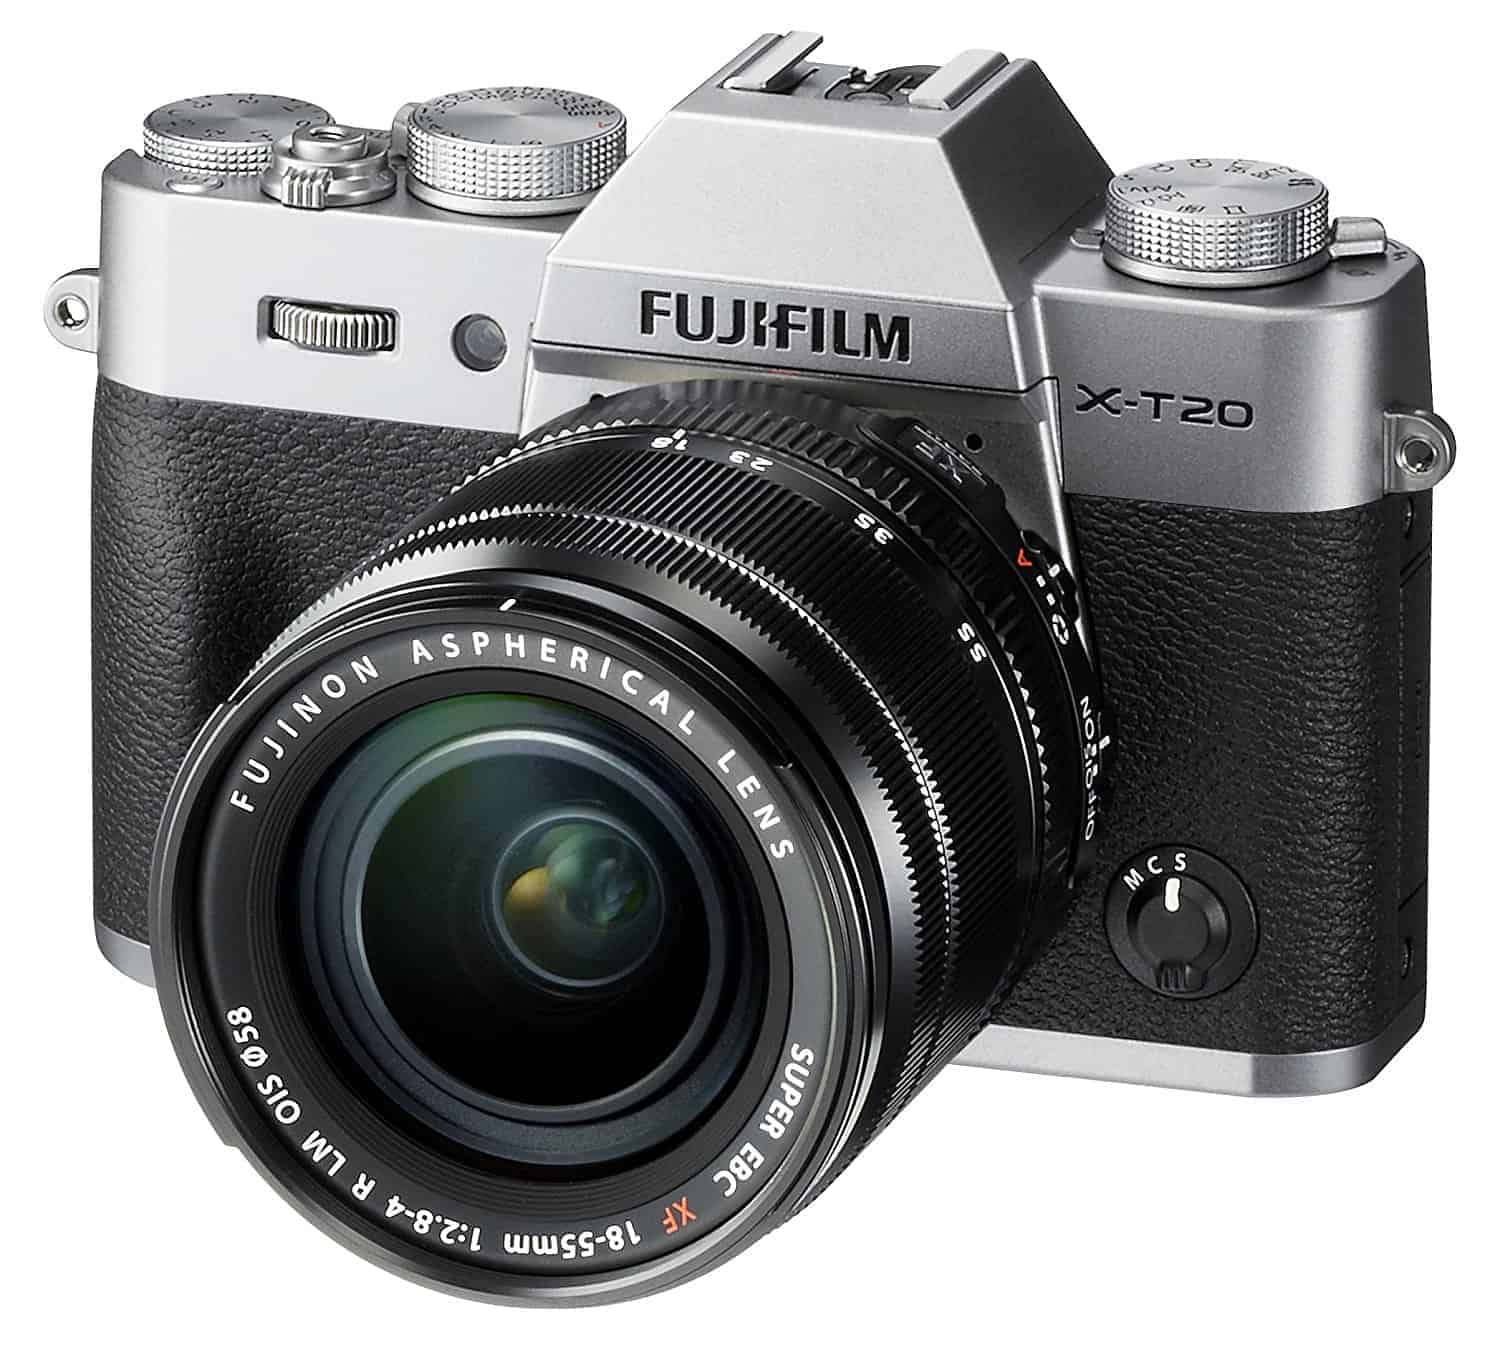 Fuji X-T20 Travel Camera for blogging